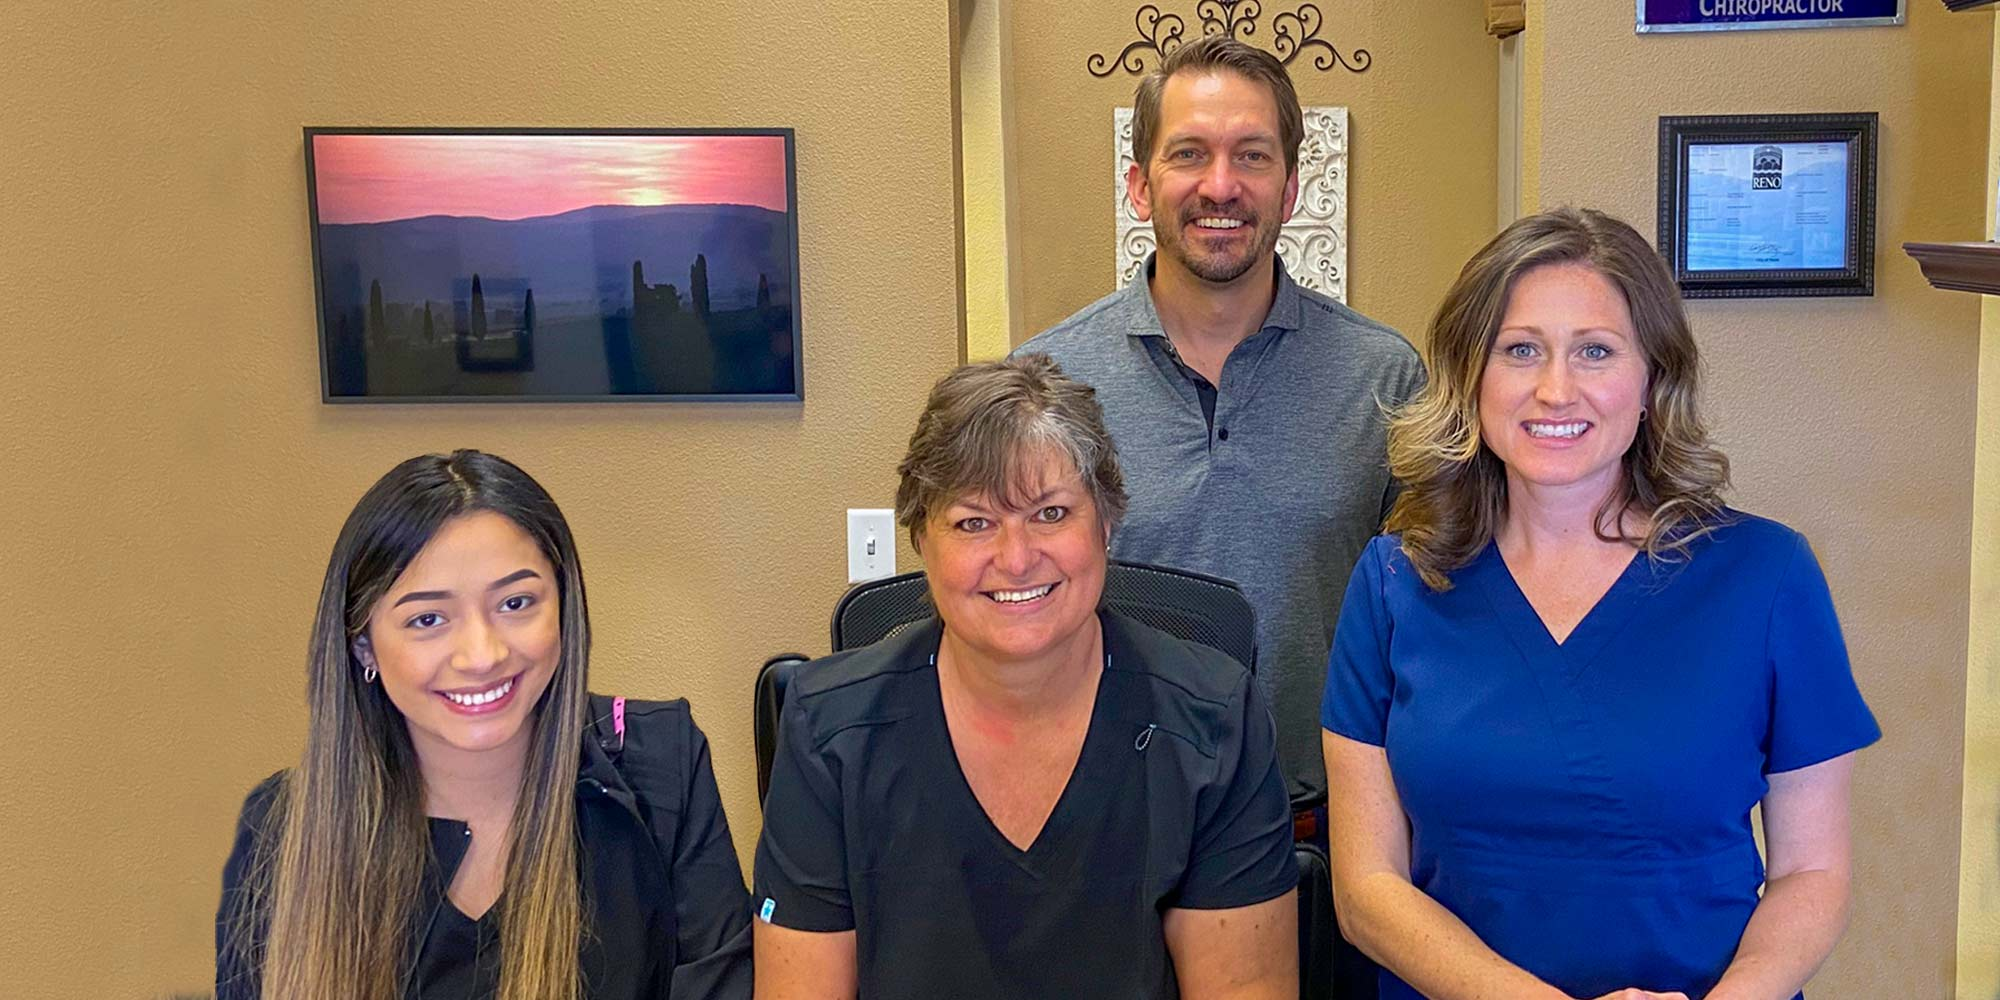 Chiropractor Reno NV Dr. David Berg and Chiropractic Team